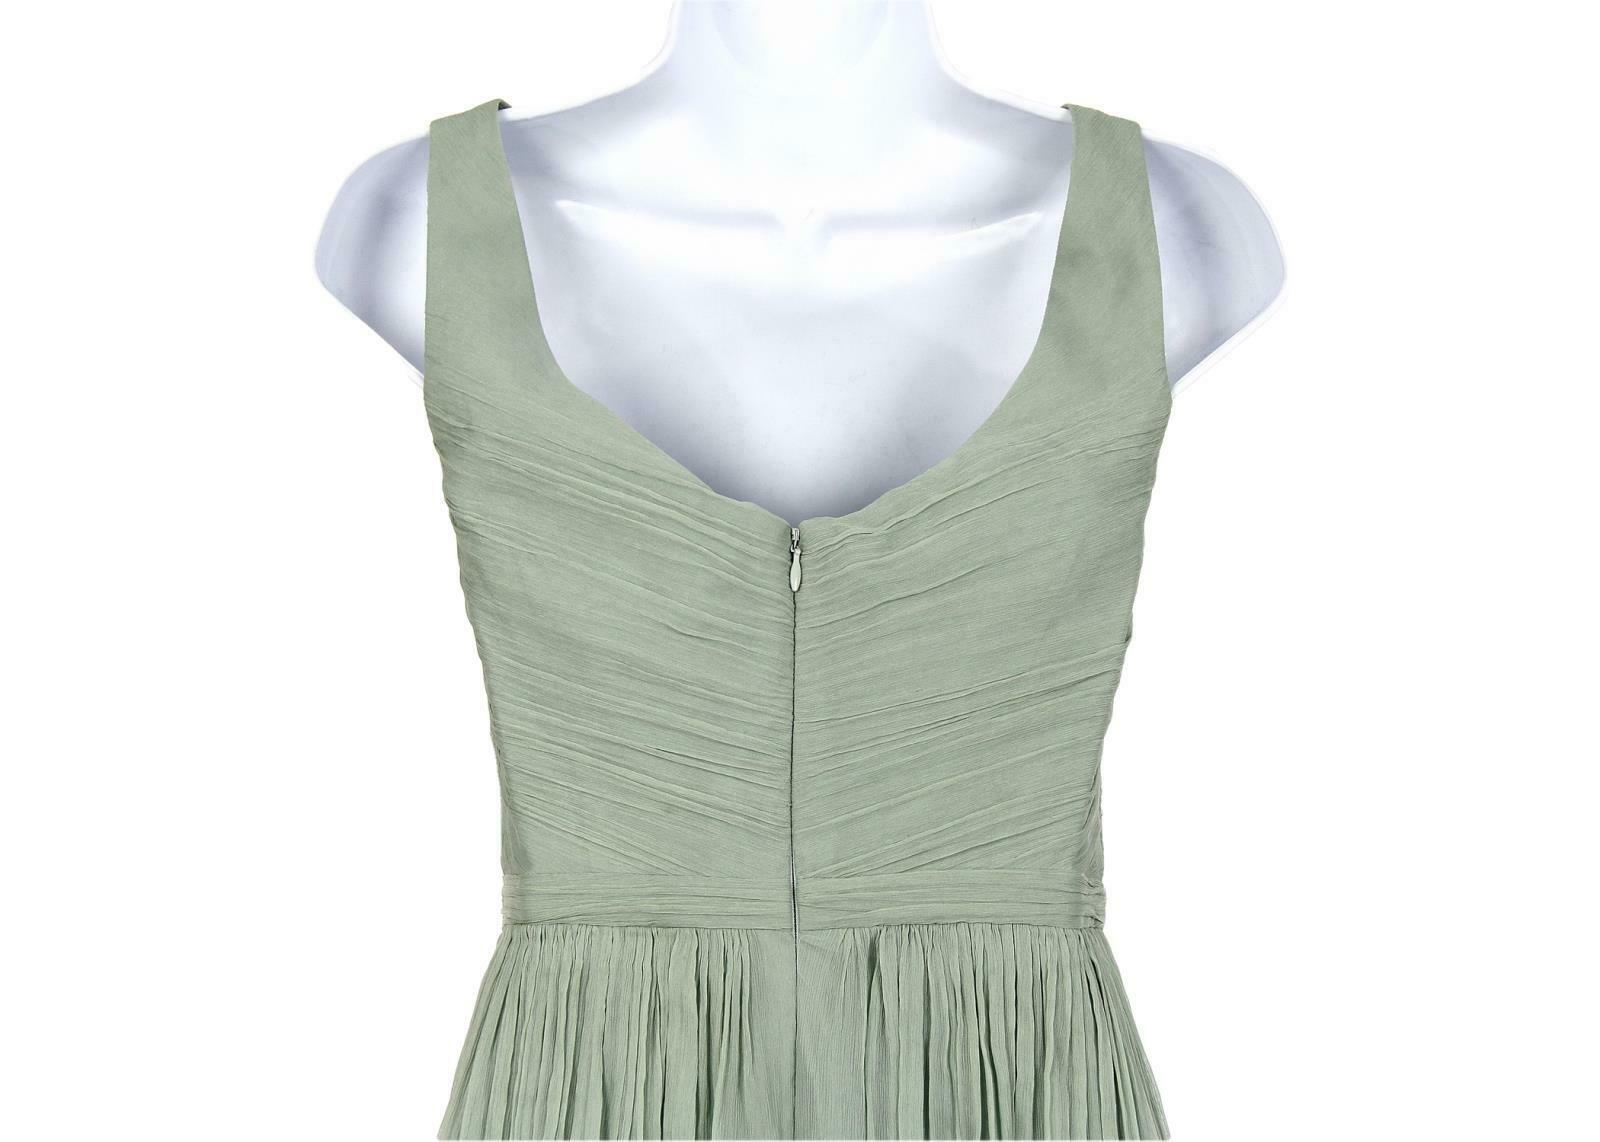 J Crew Women's Heidi Long Dress in Silk Chiffon Dusty Shale Sz 6 93075 image 5